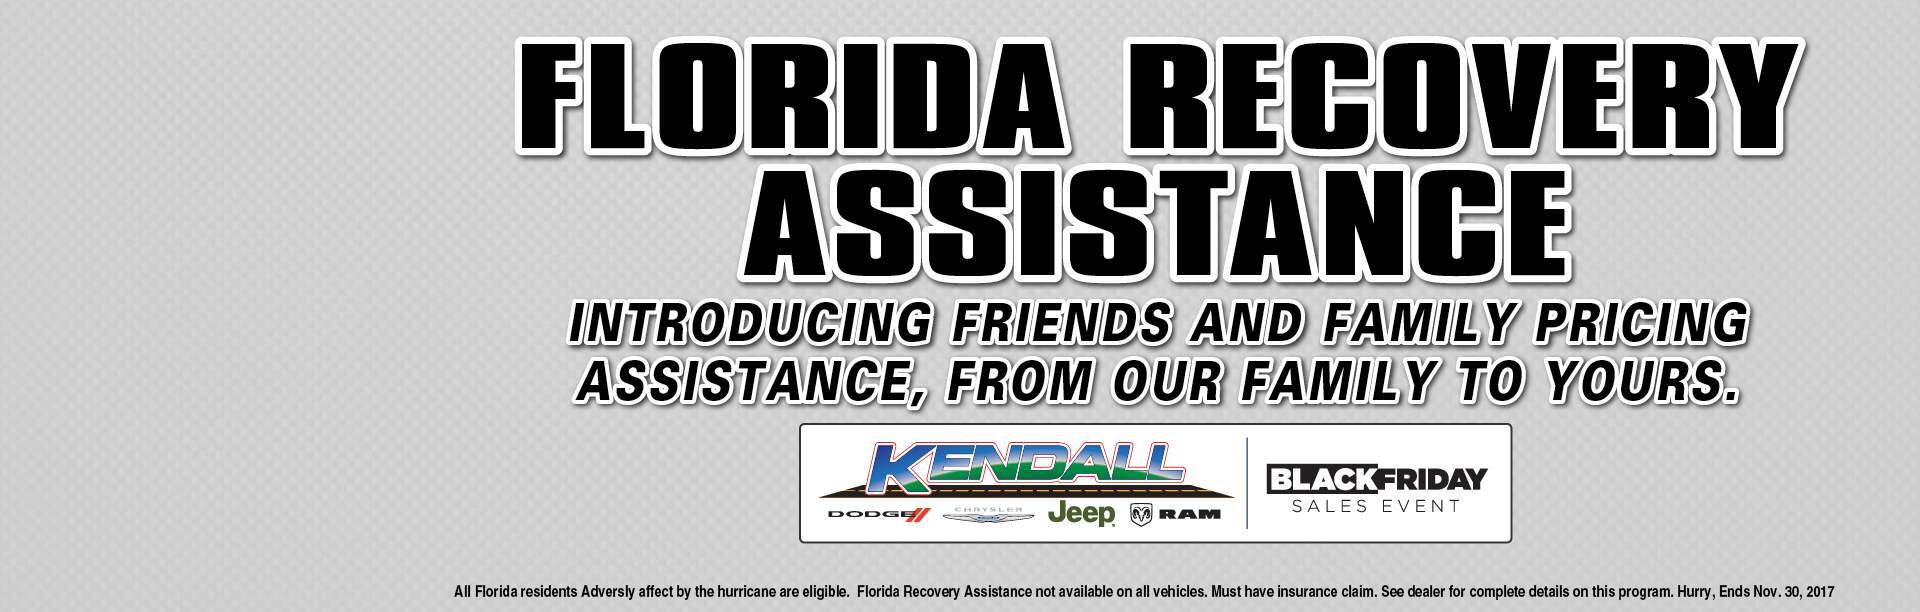 Florida Recovery Assistance - Friends and Family Pricing!!